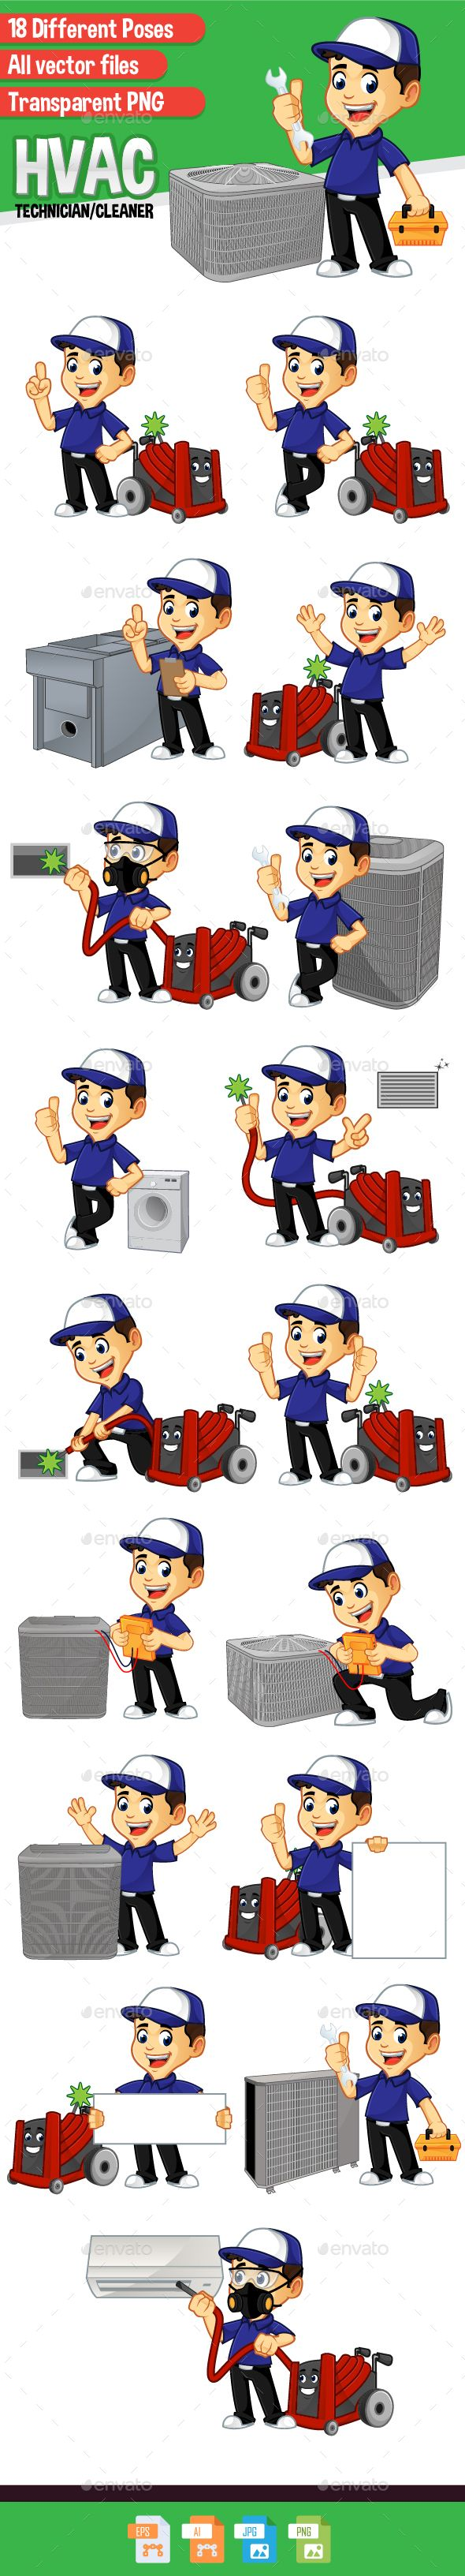 Hvac Cleaner Or Technician